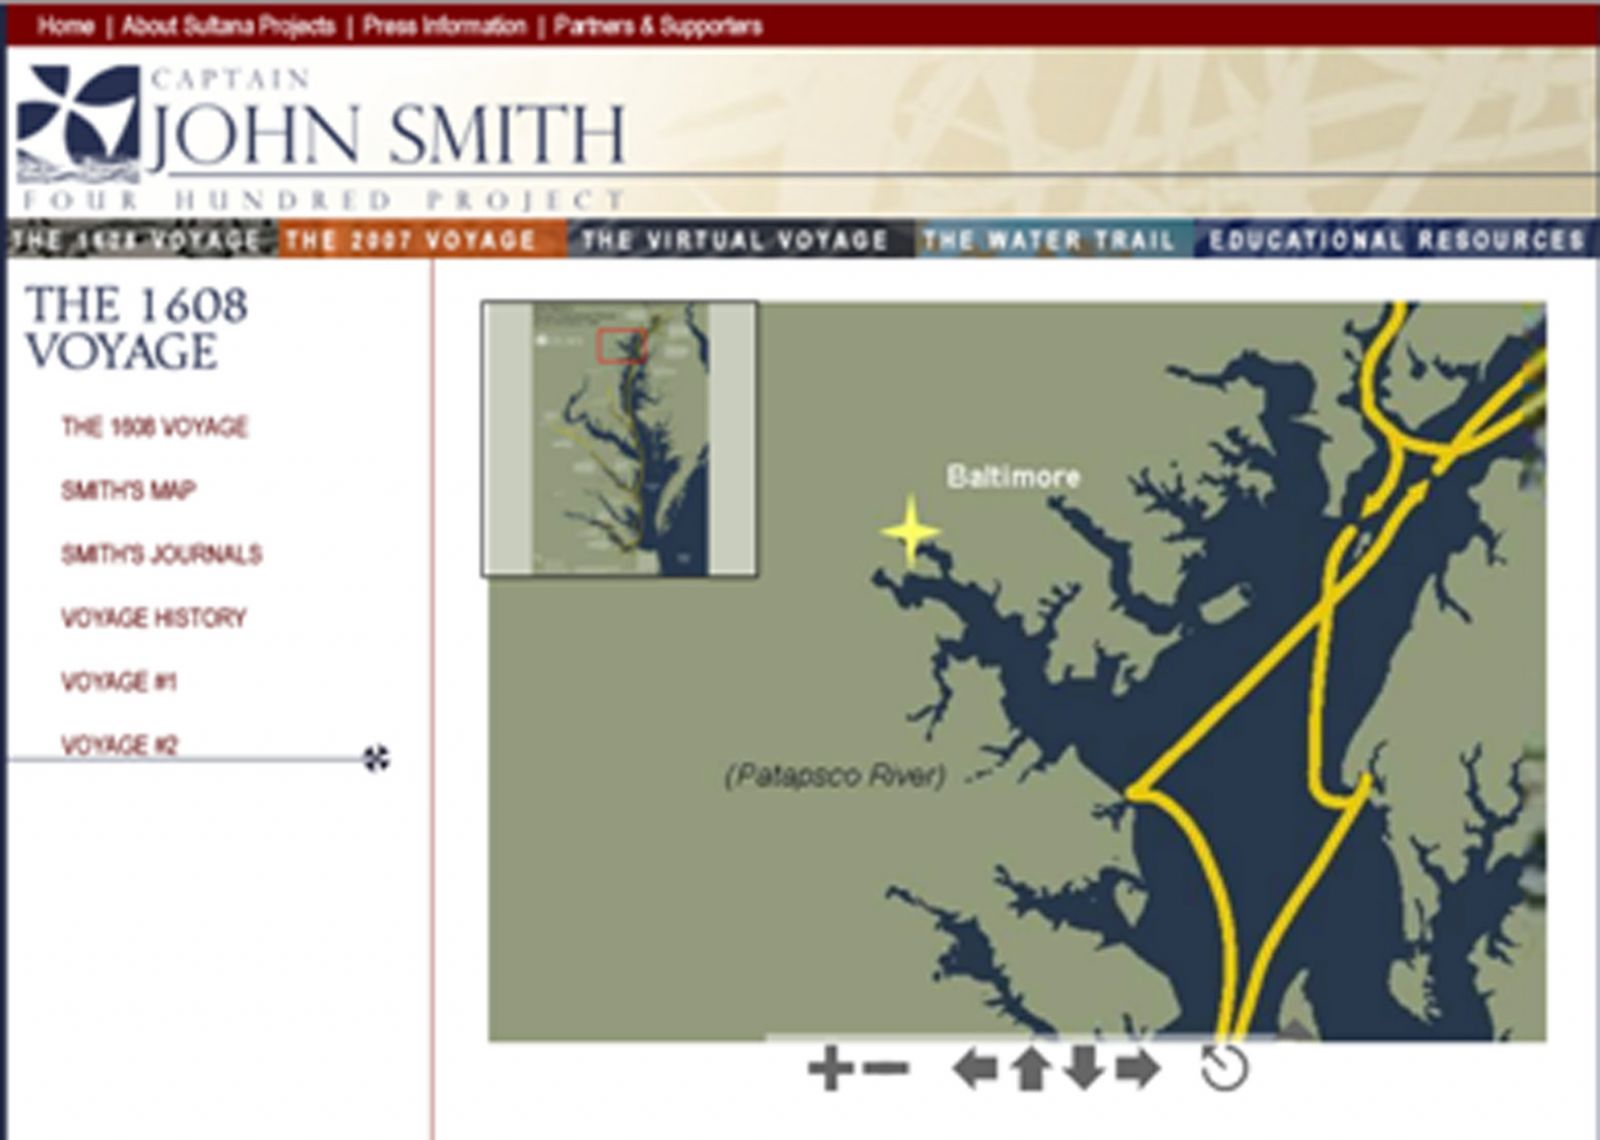 Captain John Smith's Voyage